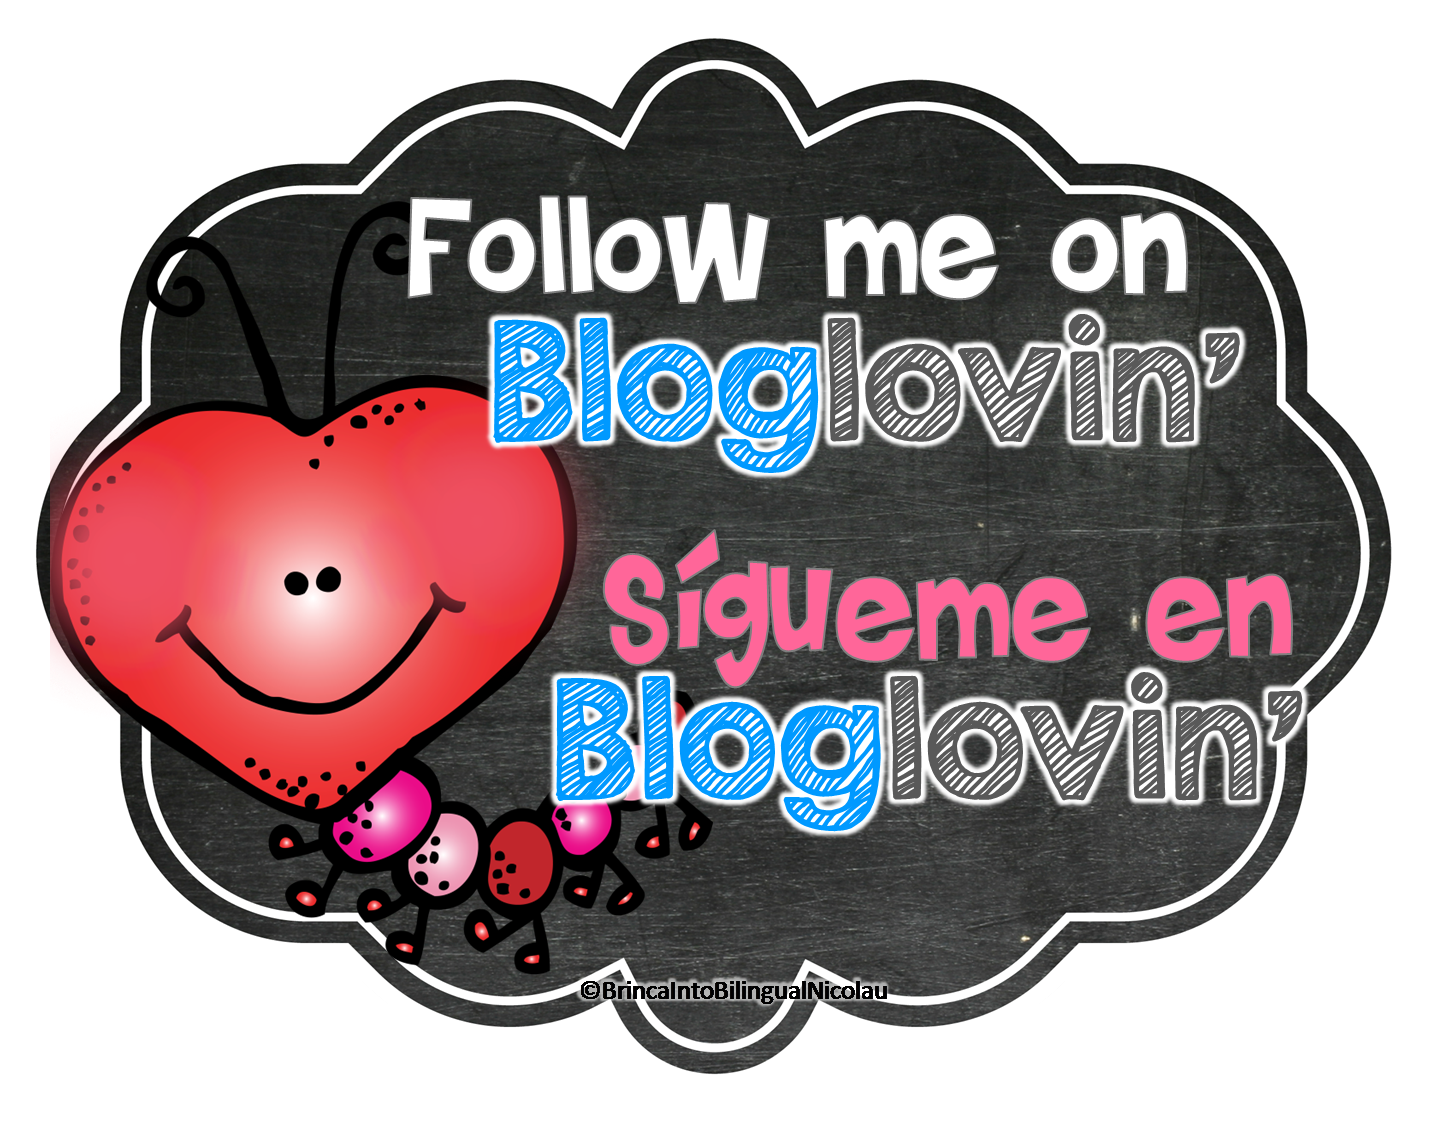 https://www.bloglovin.com/blogs/brinca-into-bilingual-mrs-nicolau-9807611